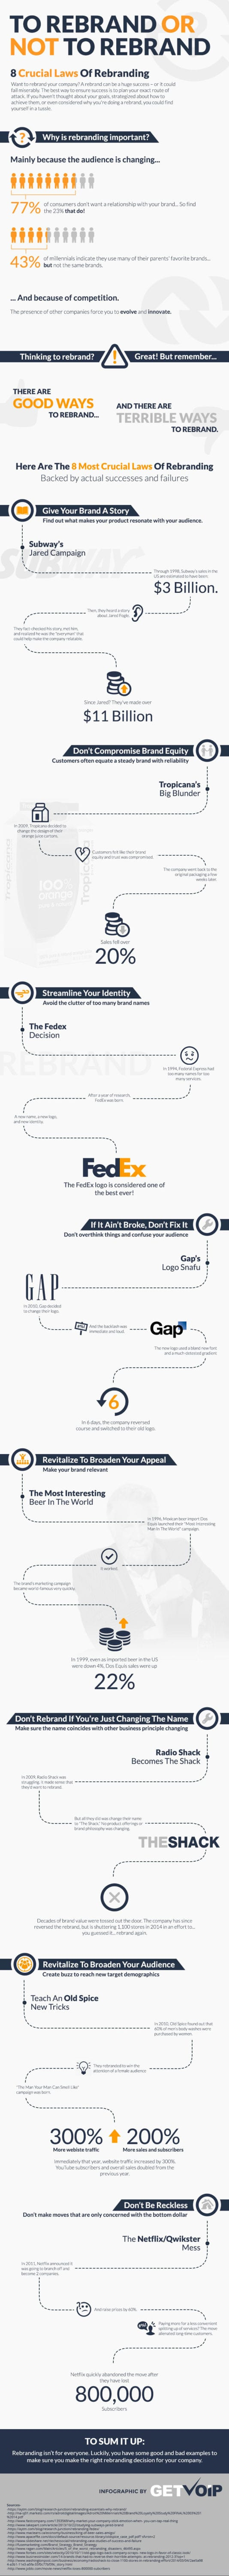 How To Rebrand Your Business Infographic